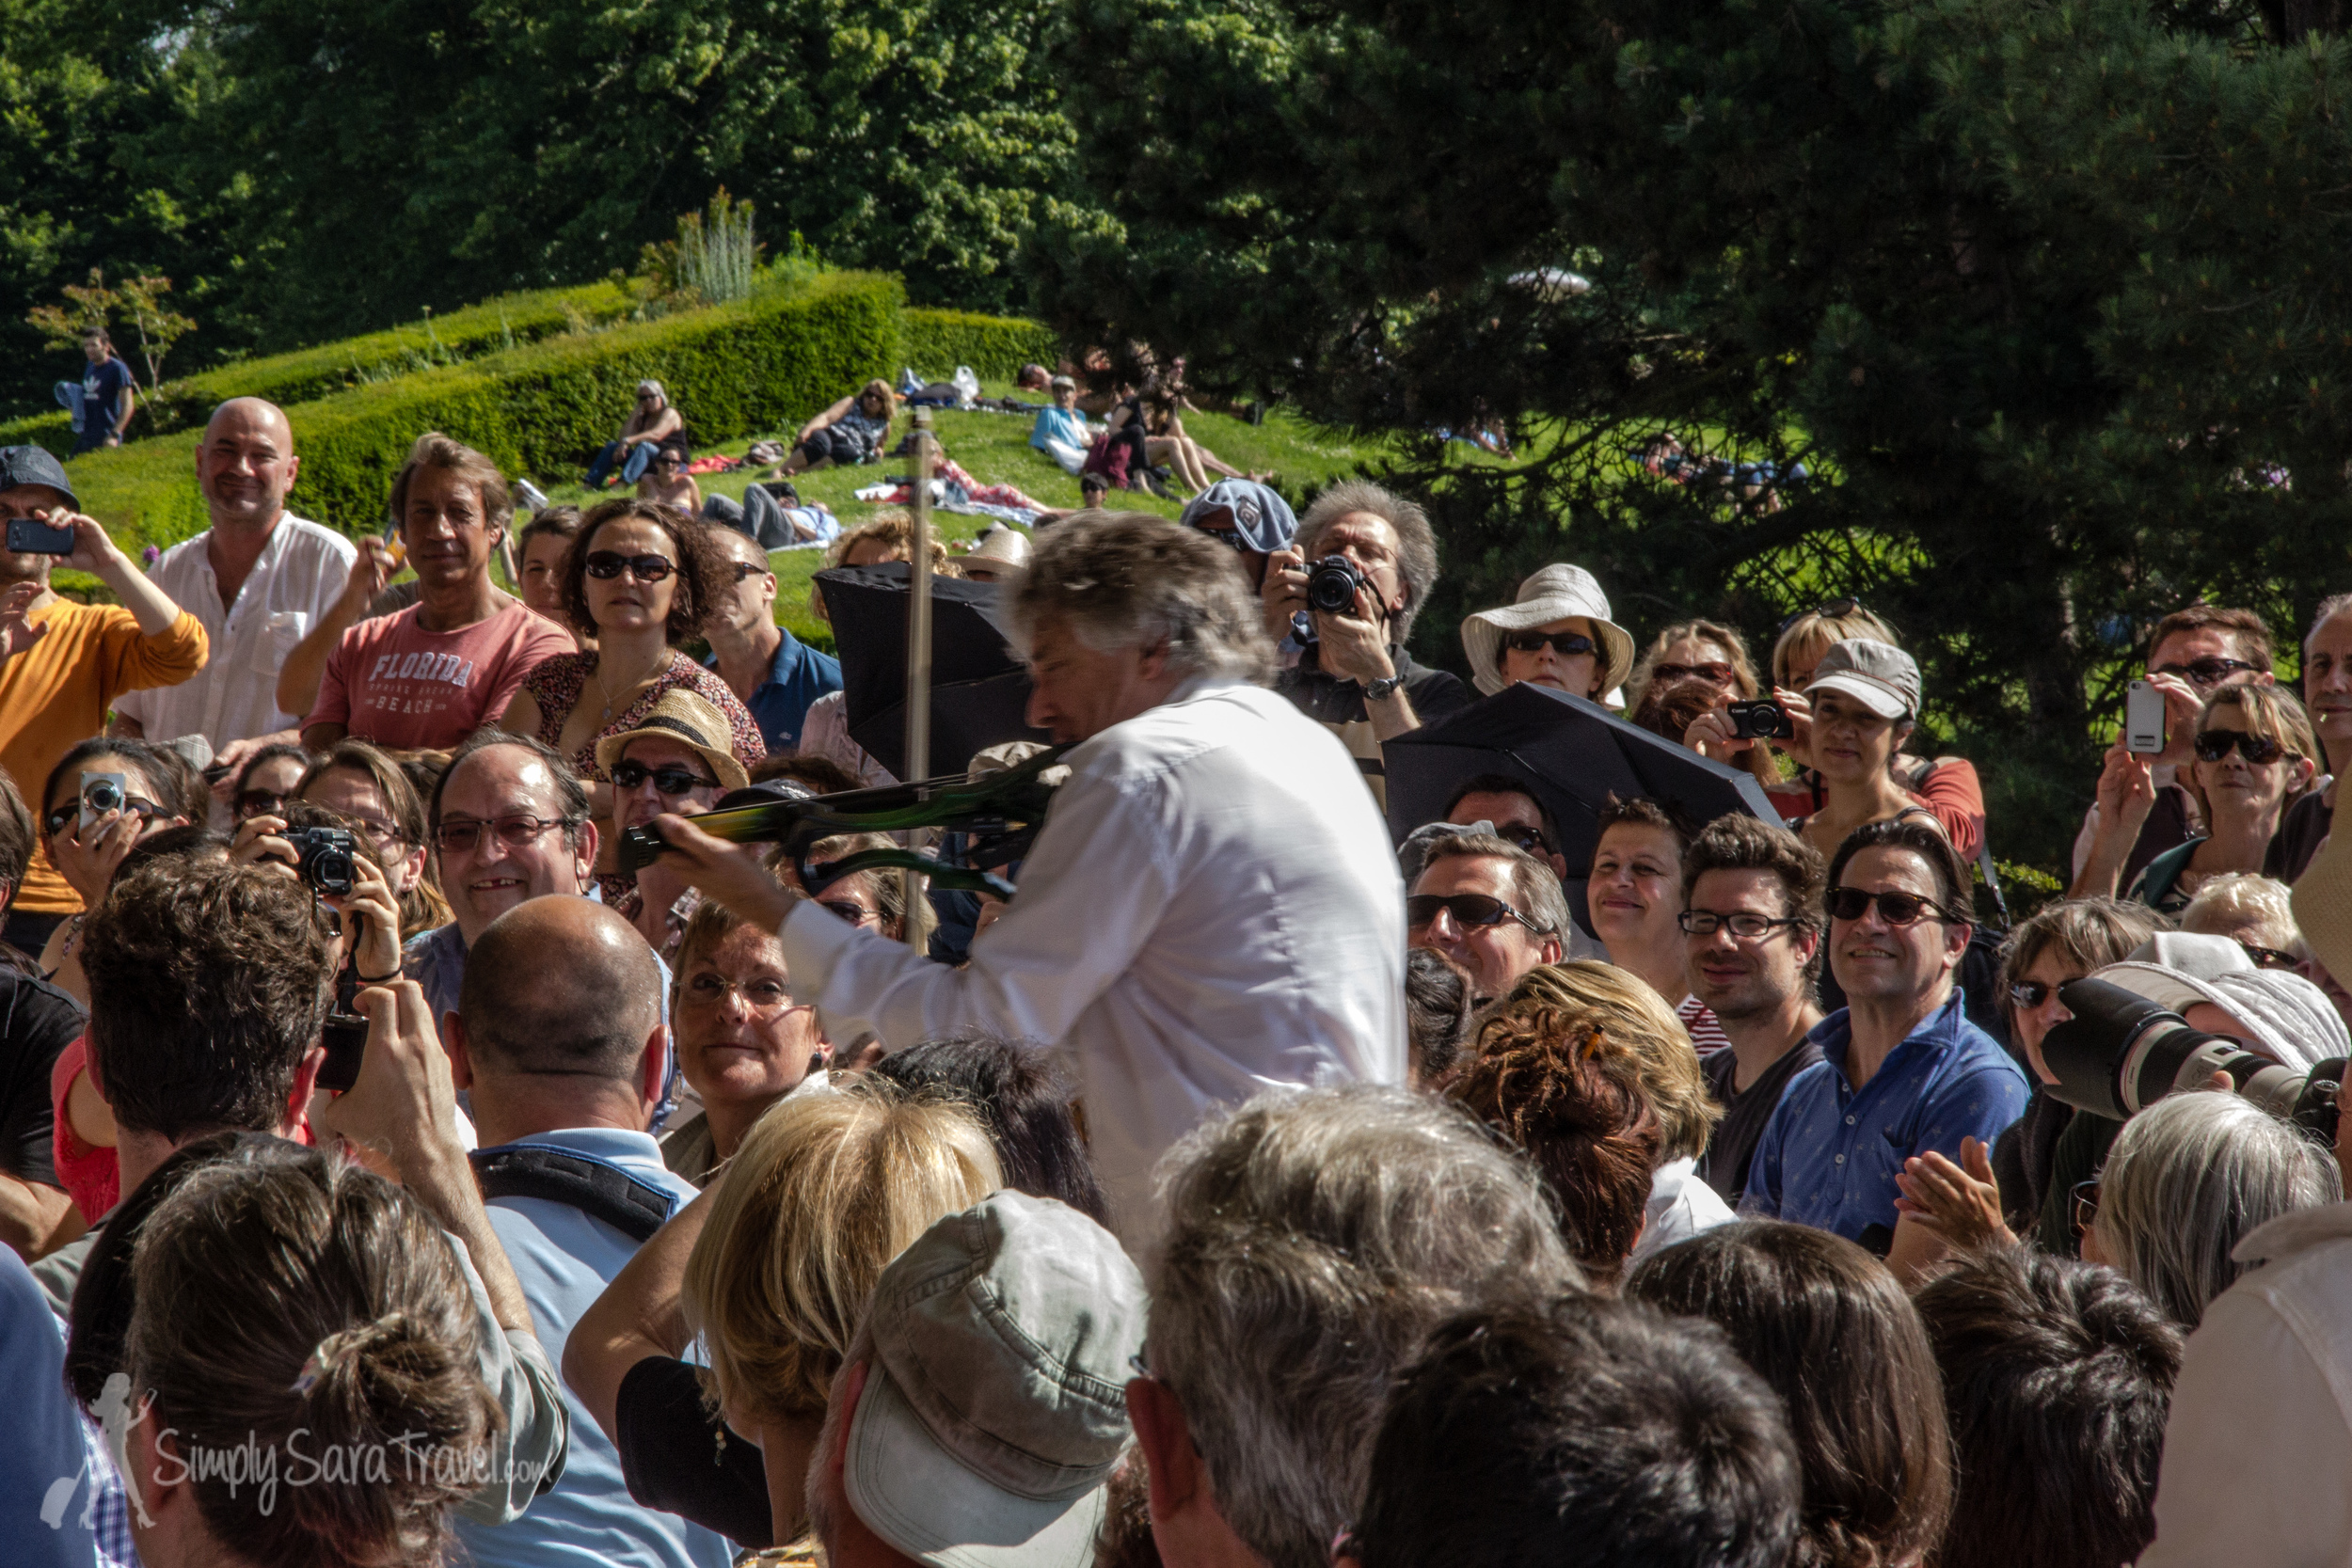 So this is the point when  Didier Lockwood  decided to start running around the crowds  while playing  his violin. As if he didn't stun us enough when he was somewhat stationary on stage.